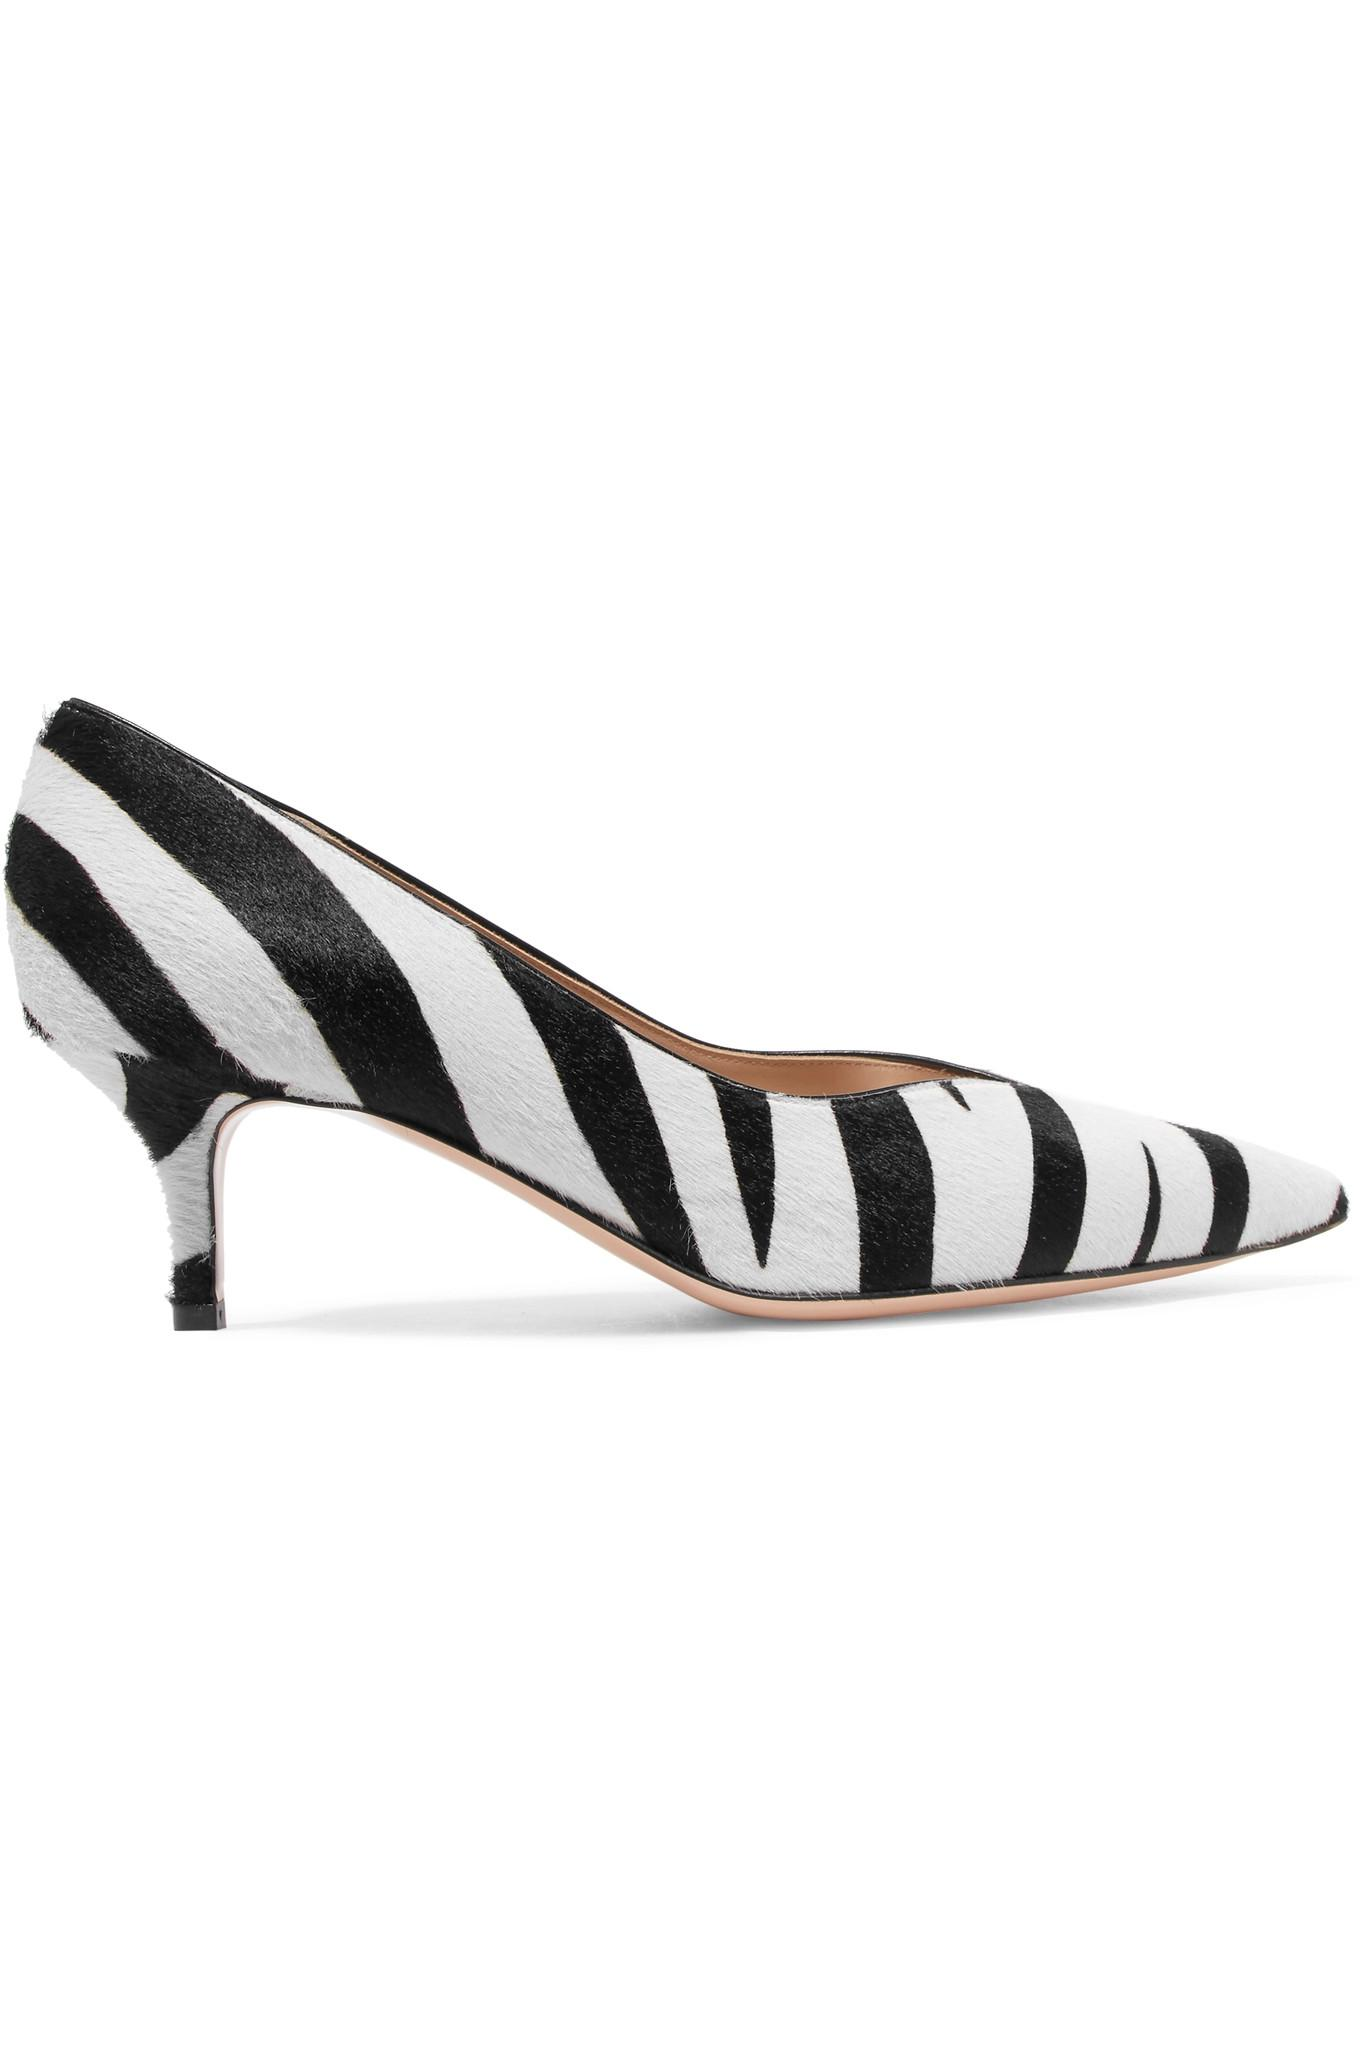 55 Zebra-print Calf Hair Mules - Zebra print Gianvito Rossi Official Site Cheap Price Buy Cheap With Paypal Discount Best Seller Discount For Nice Shop For Online V76l4lTXfz